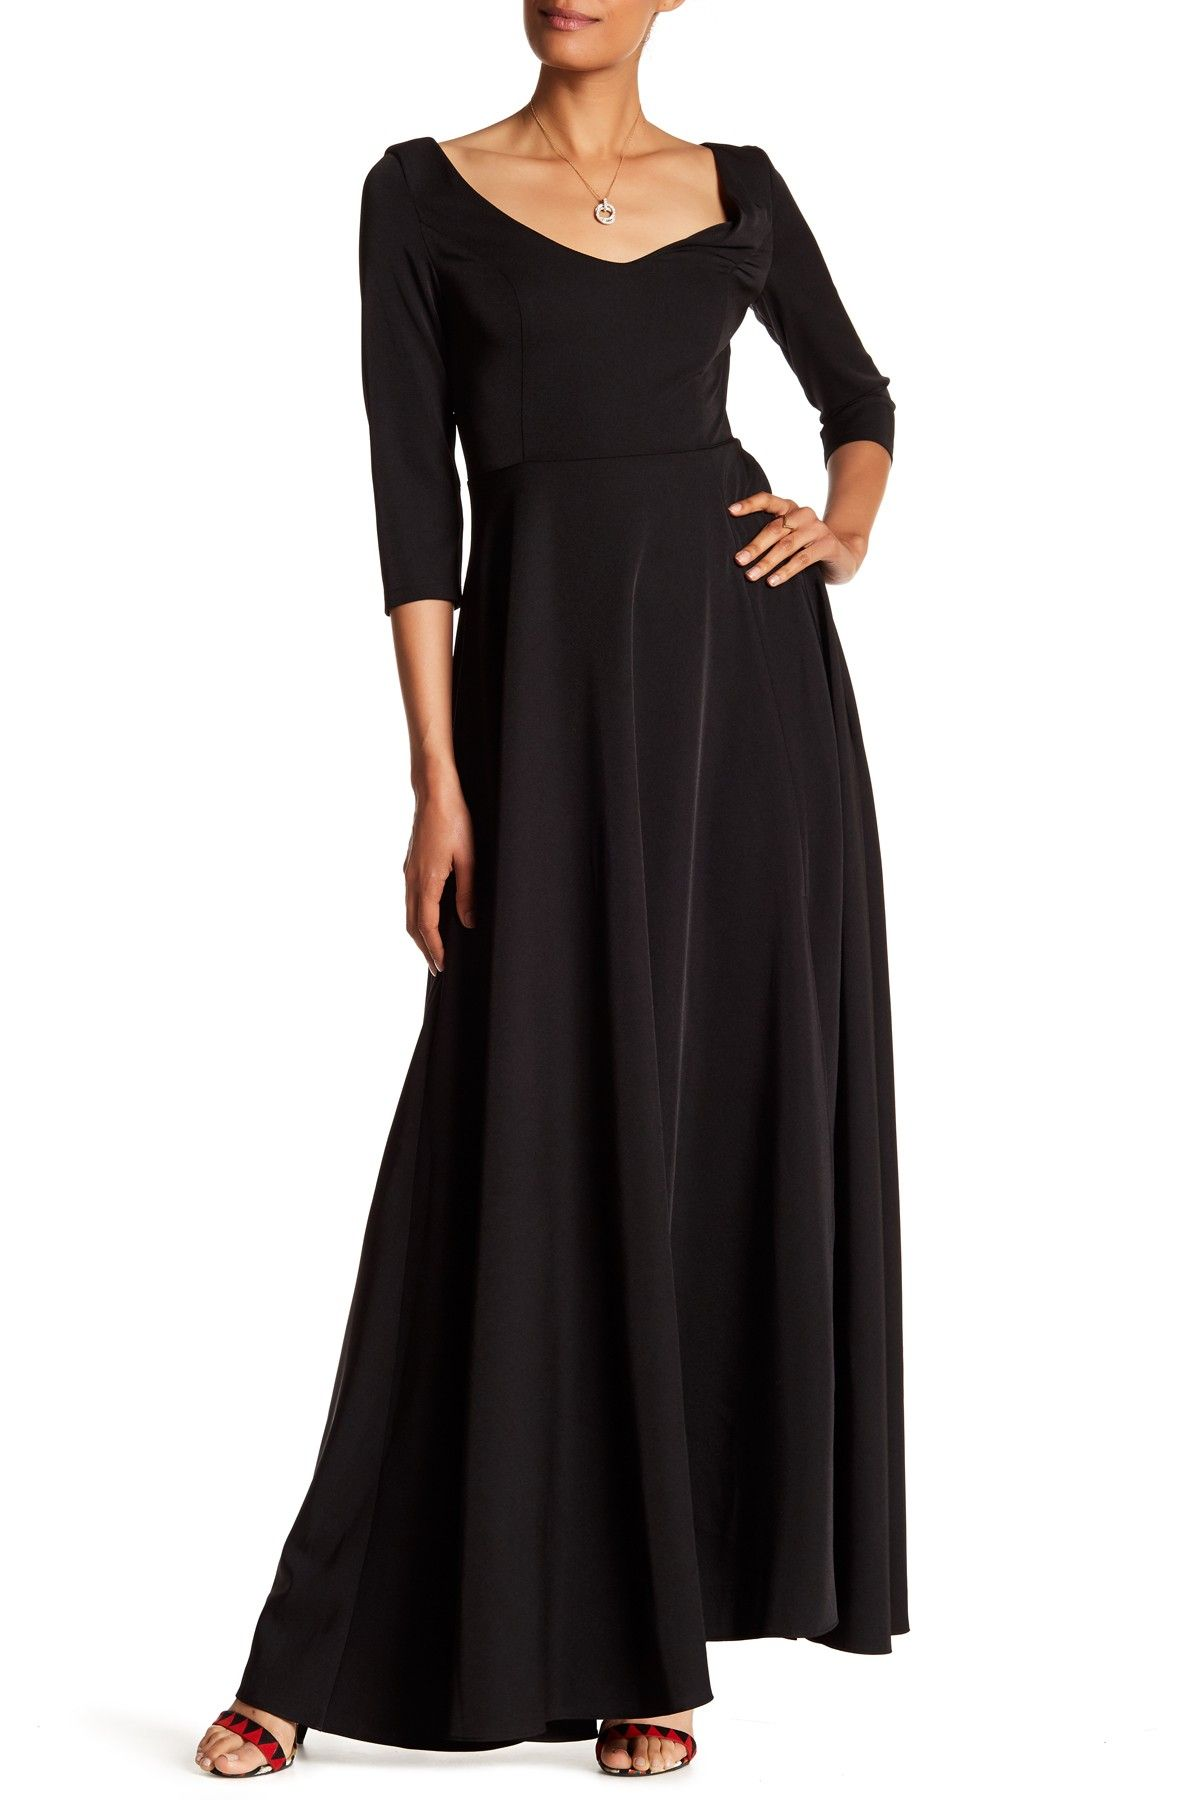 V Neck 3 4 Length Sleeve Maxi Dress By Annete On Hautelook Maxi Dress With Sleeves Maxi Dress Dresses [ 1800 x 1200 Pixel ]